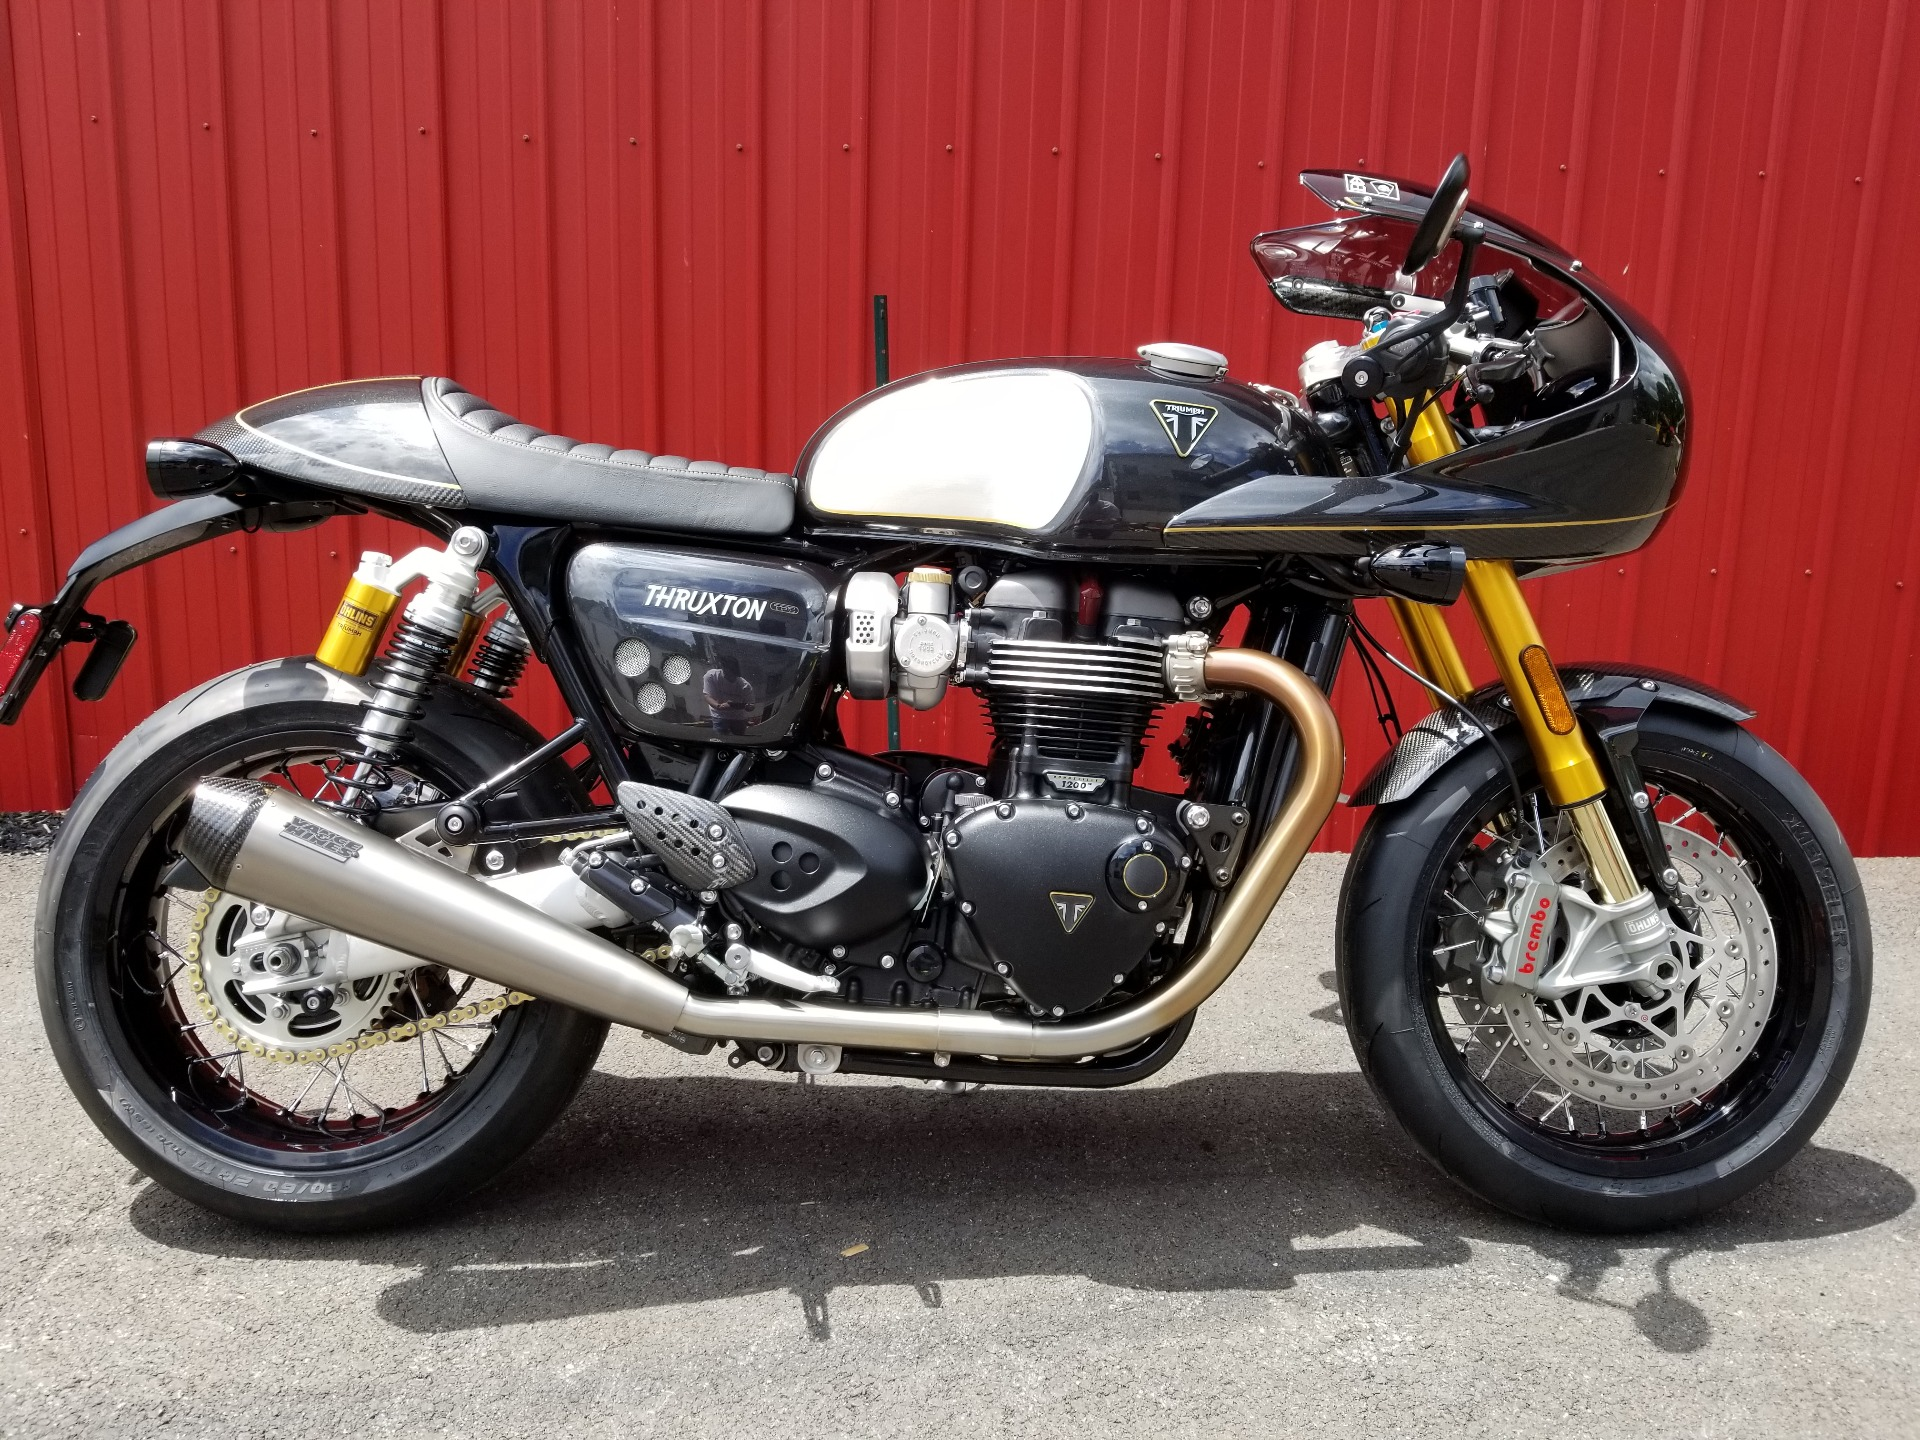 2020 Triumph Thruxton 1200 TFC in Port Clinton, Pennsylvania - Photo 1